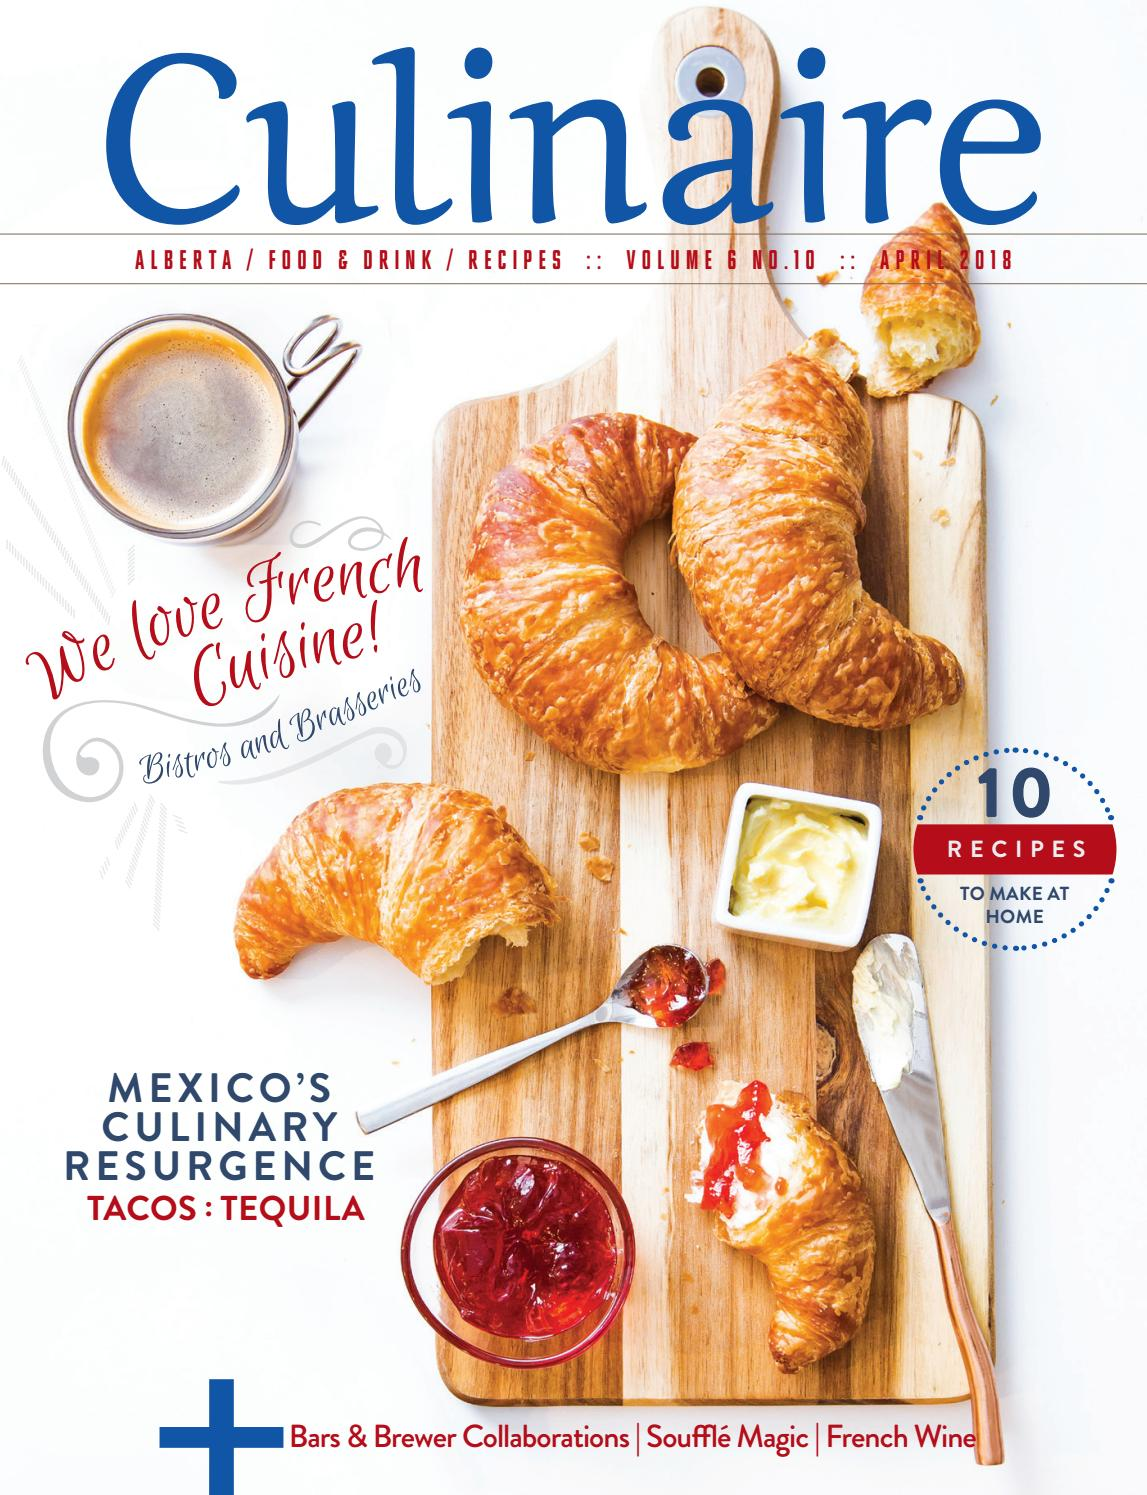 728eeab3fa05 Culinaire  6 10 (April 2018) by Culinaire Magazine - issuu